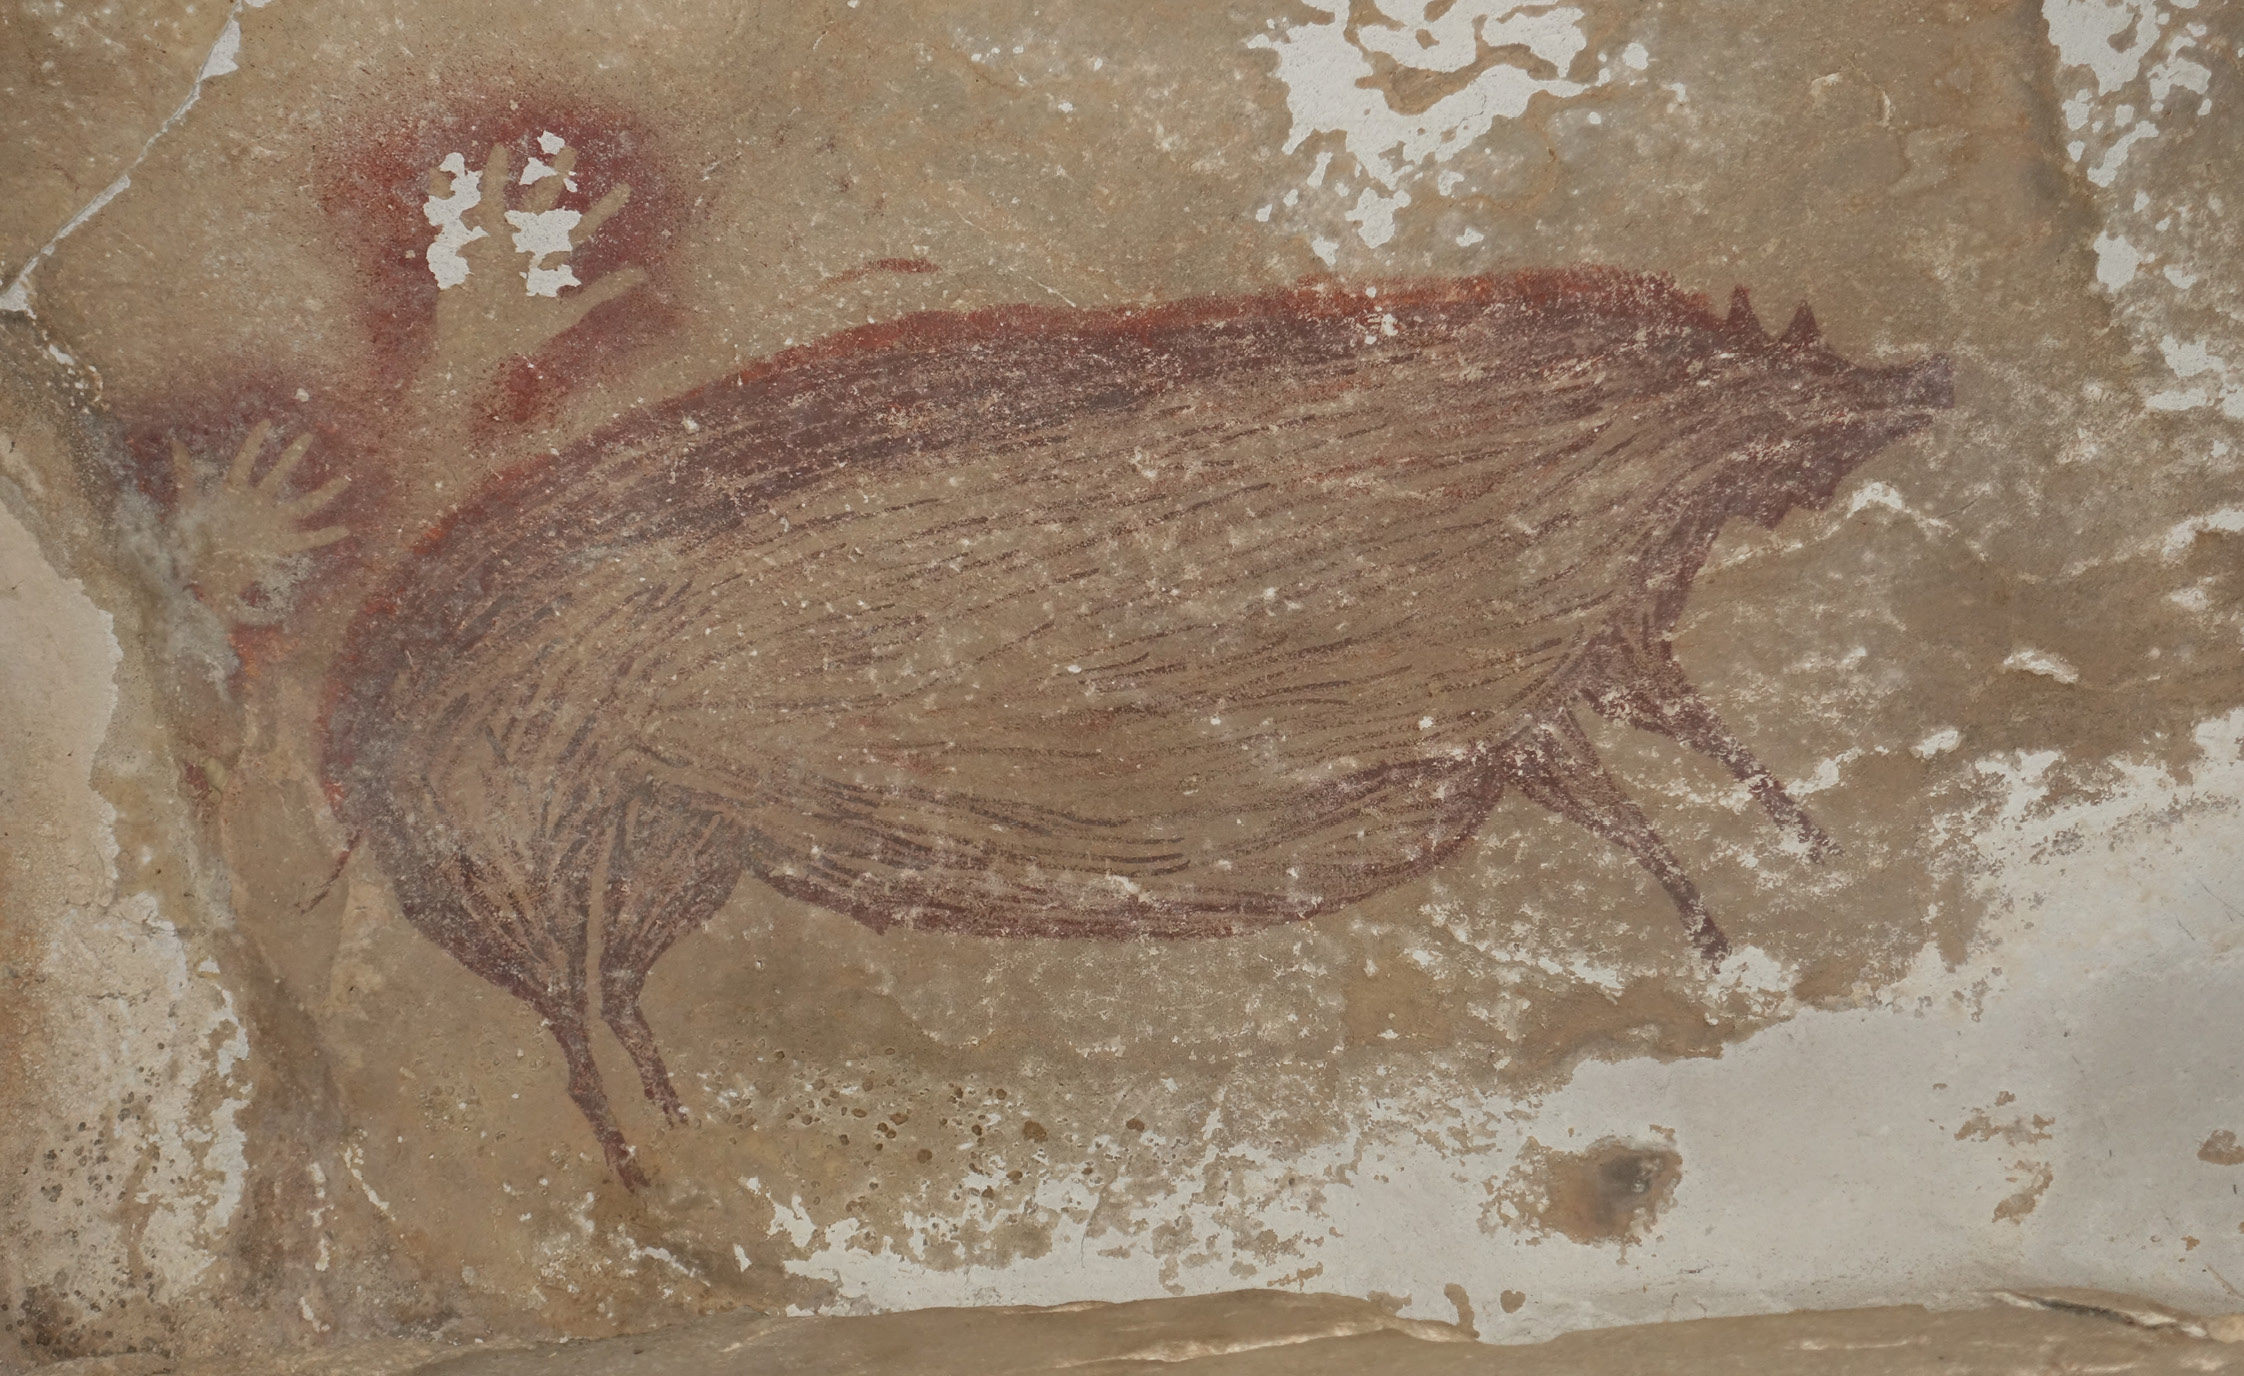 The paintings in Leang Tedongnge cave depict the Sulawesi warty pig, a species commonly featured in Indonesian rock art.